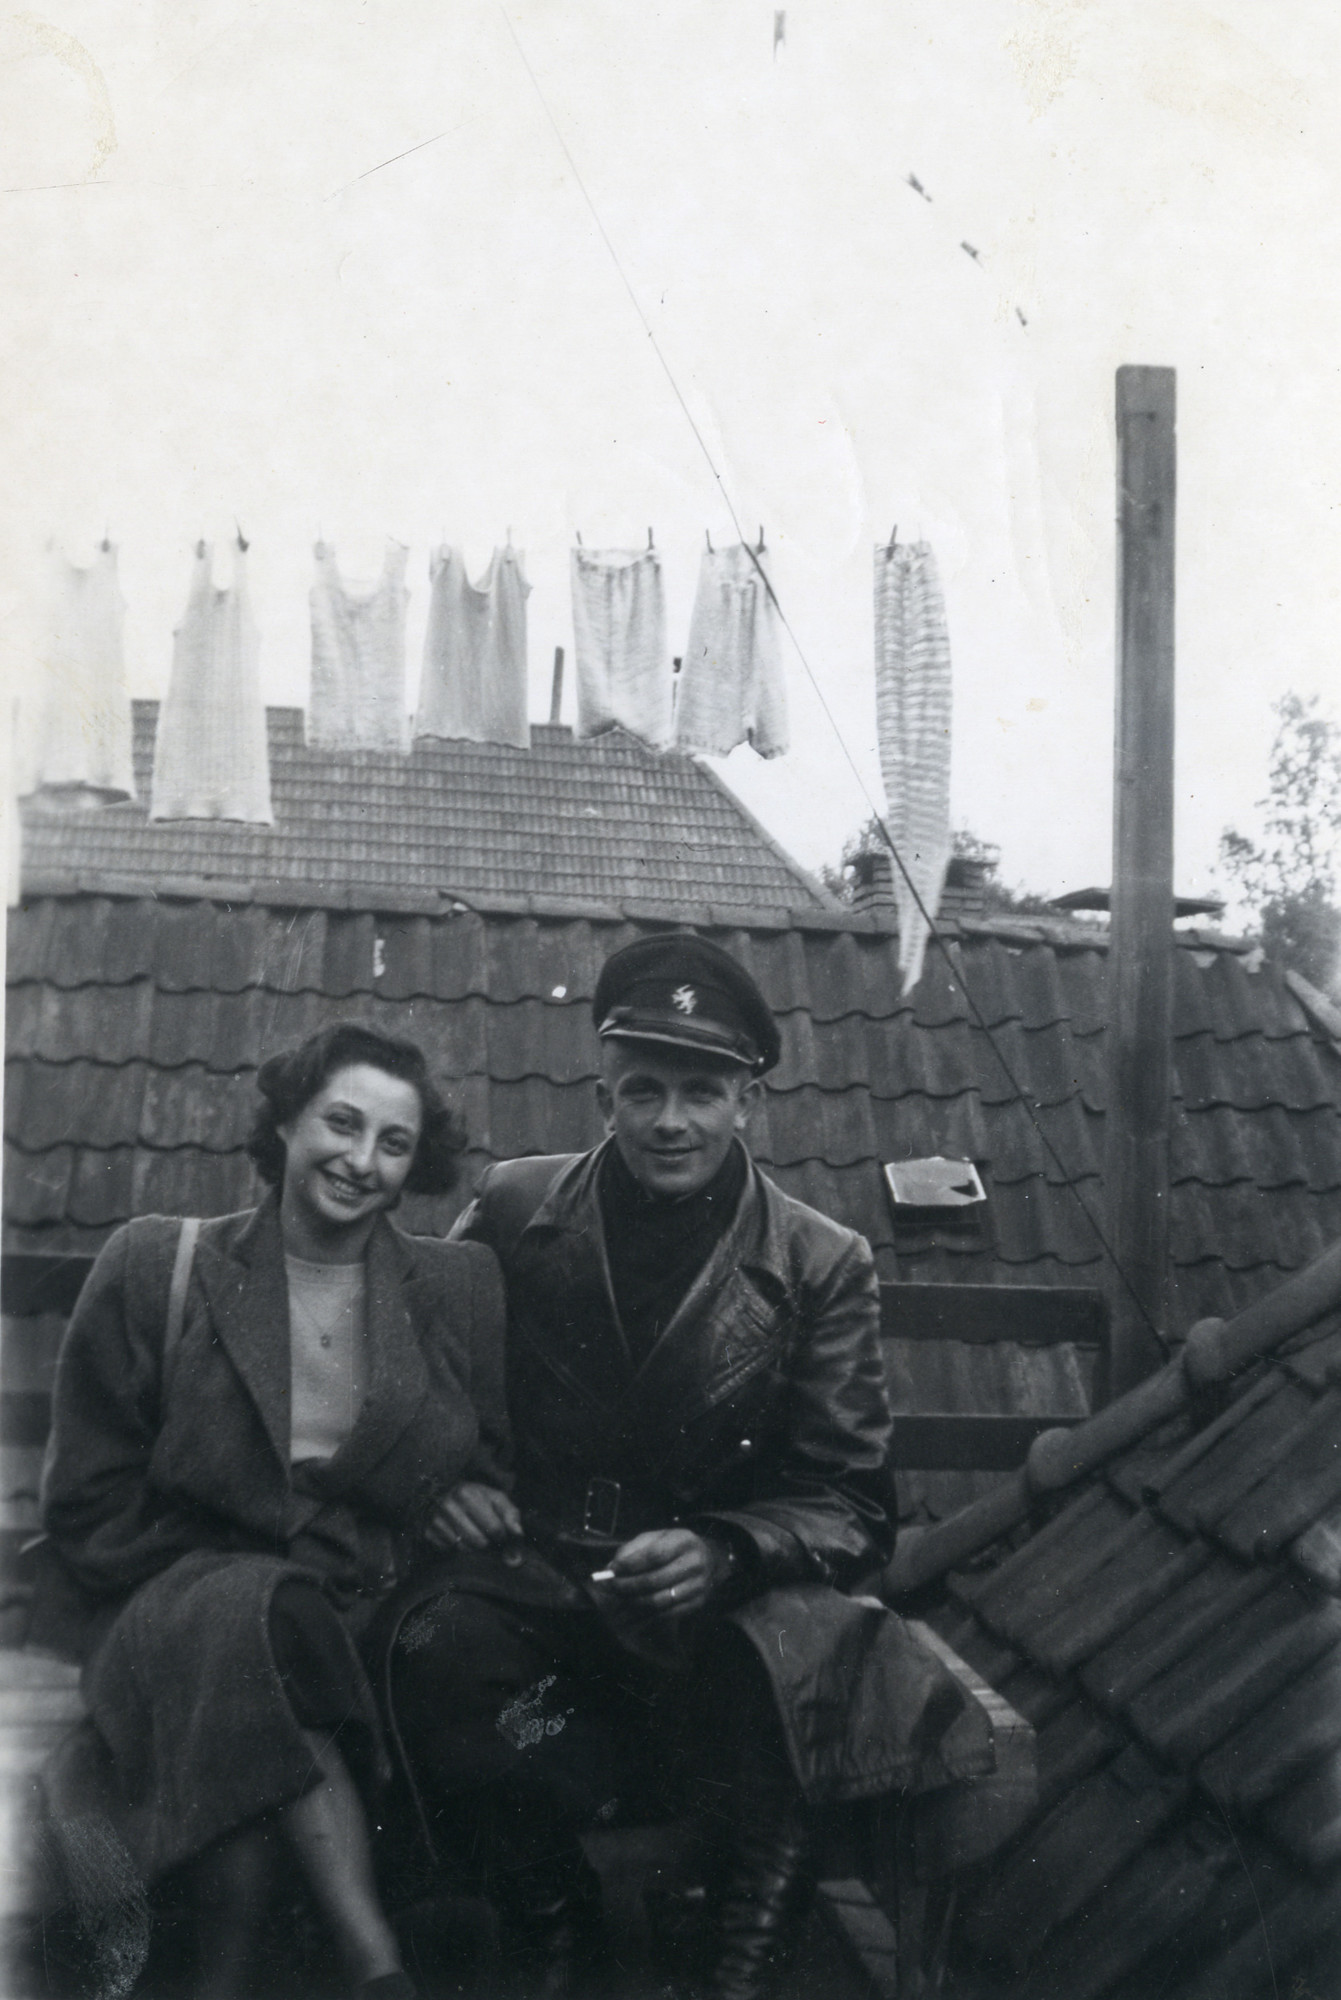 A Dutch Jewish woman poses on a rooftop with one of her wartime rescuers.  Pictured are Erna Stopper (later Bindelglas) and Jelka Rozema.